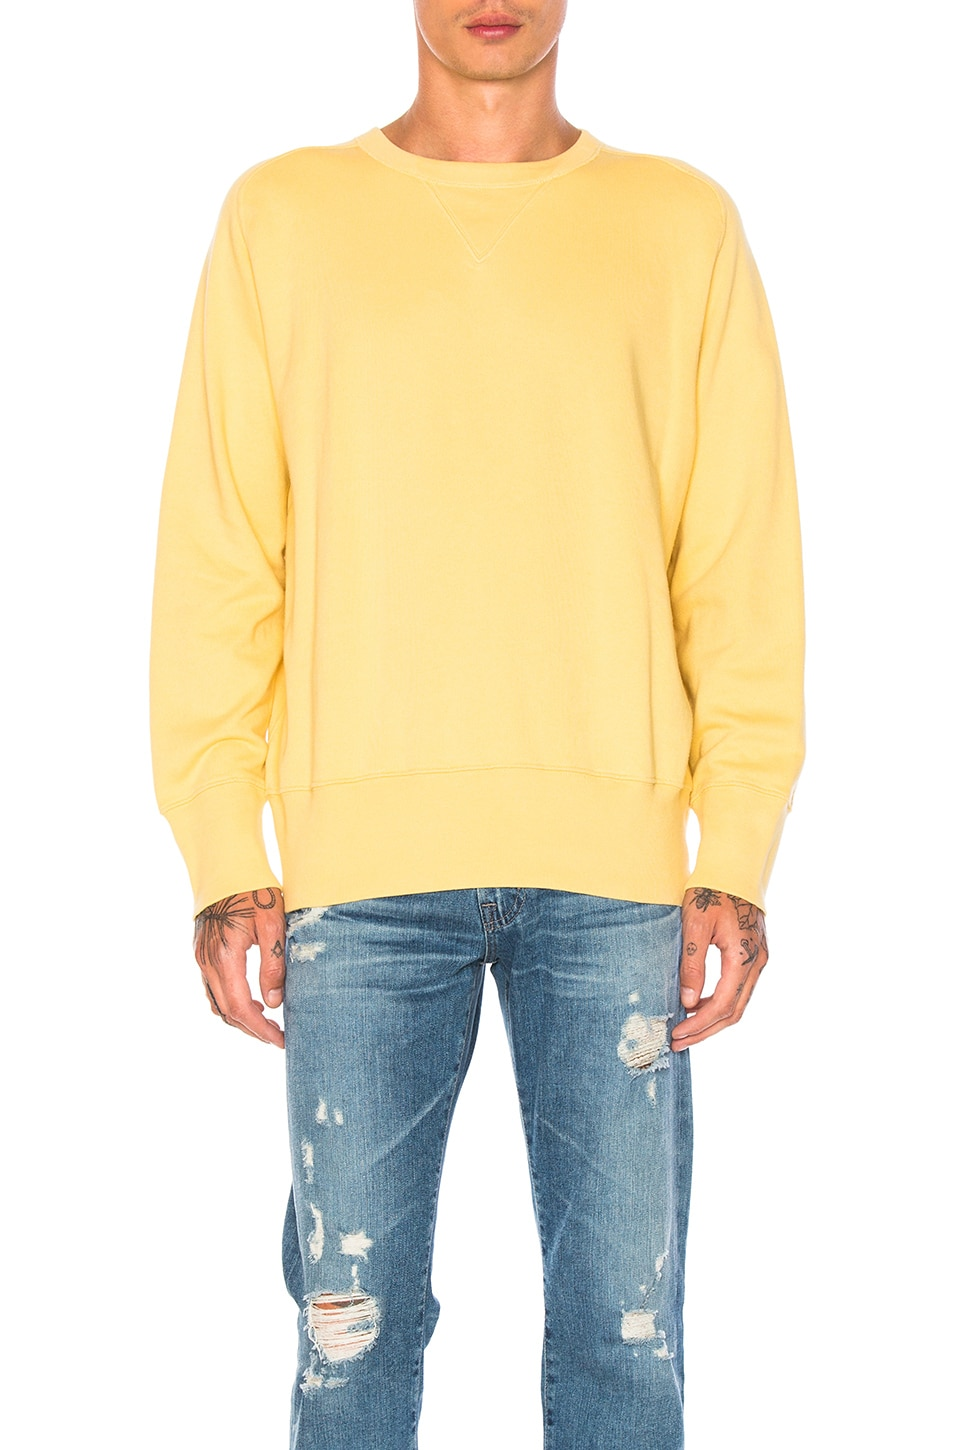 22fab00d LEVI'S Vintage Clothing Bay Meadows Sweatshirt in Faded Banana | REVOLVE